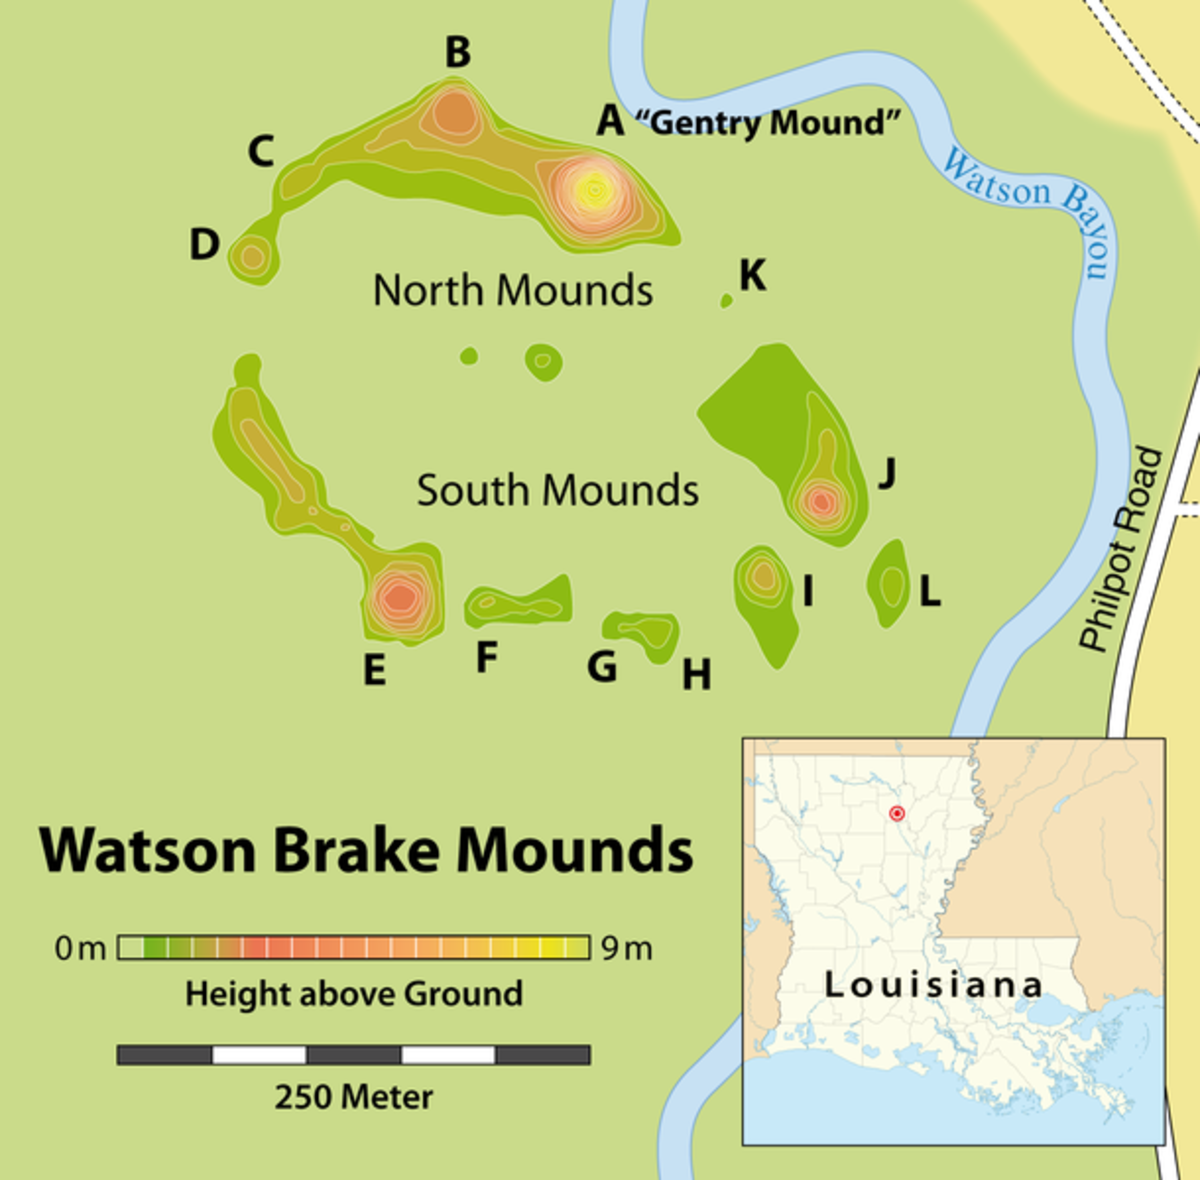 Watson Brake mounds site in northern Louisiana.